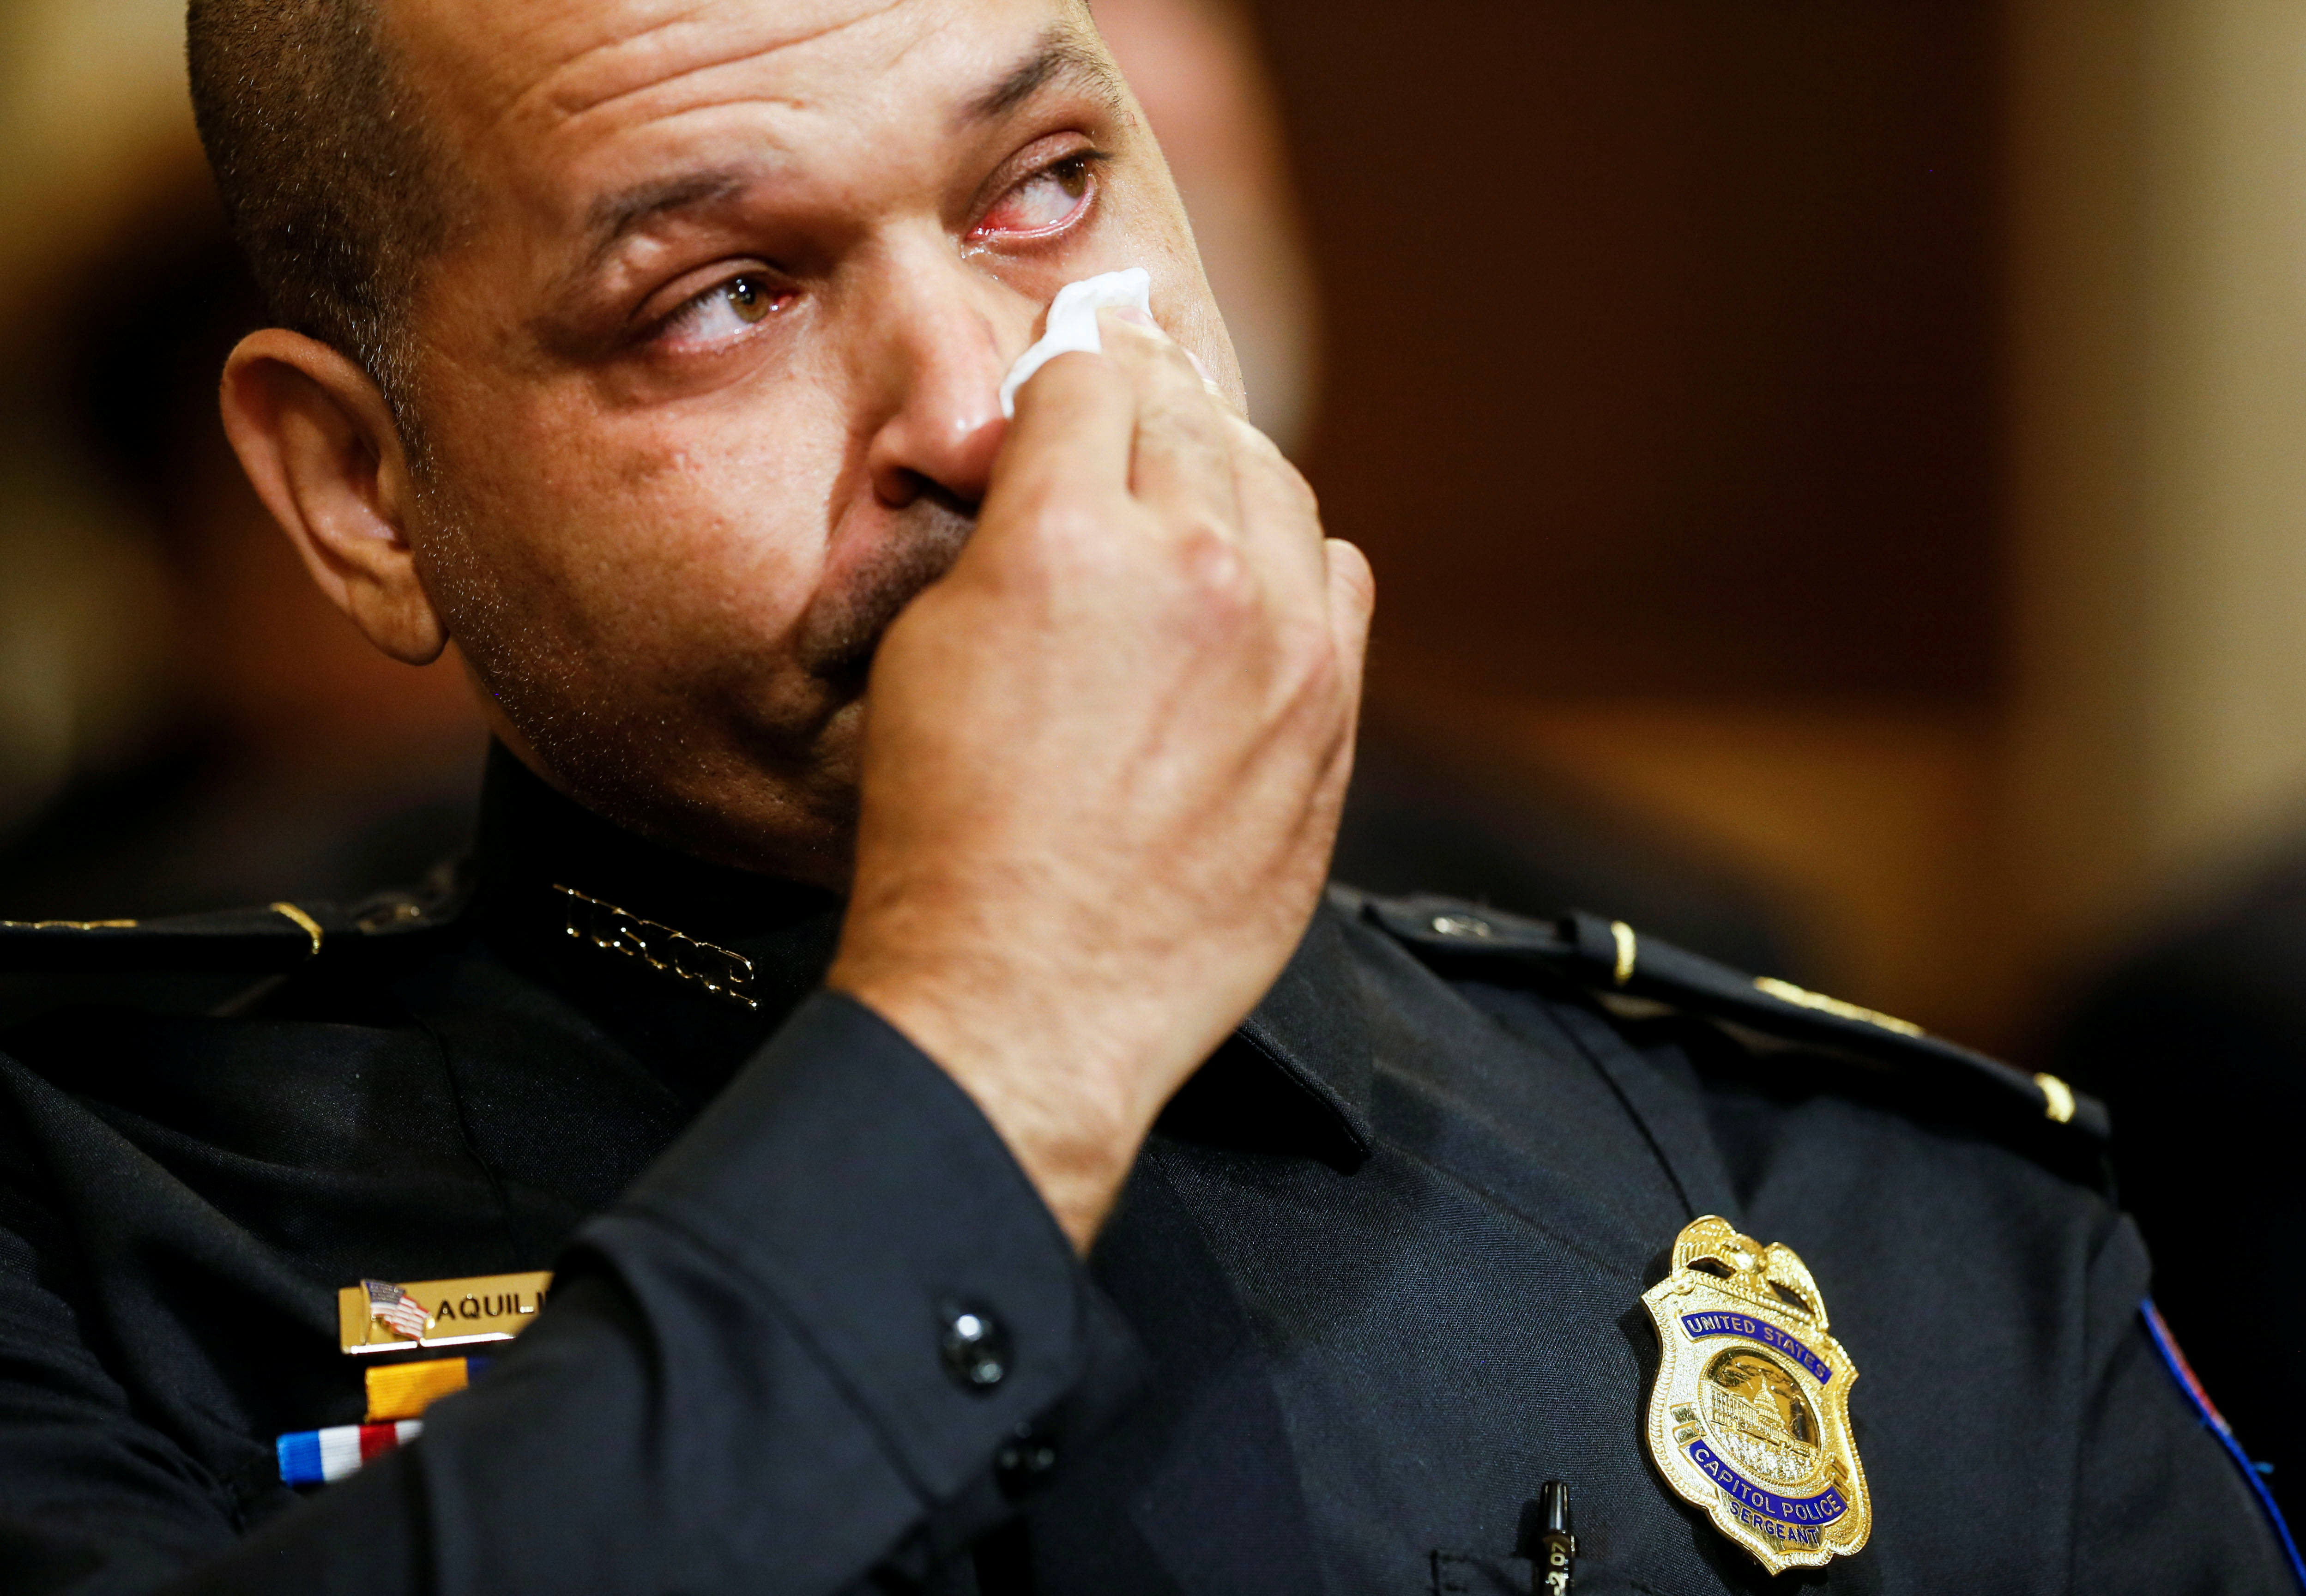 U.S. Capitol Police sergeant Aquilino Gonell wipes tears prior to testifying before the opening hearing of the U.S. House (Select) Committee investigating the January 6 attack on the U.S. Capitol, on Capitol Hill in Washington, U.S., July 27, 2021. REUTERS/Jim Bourg/Pool